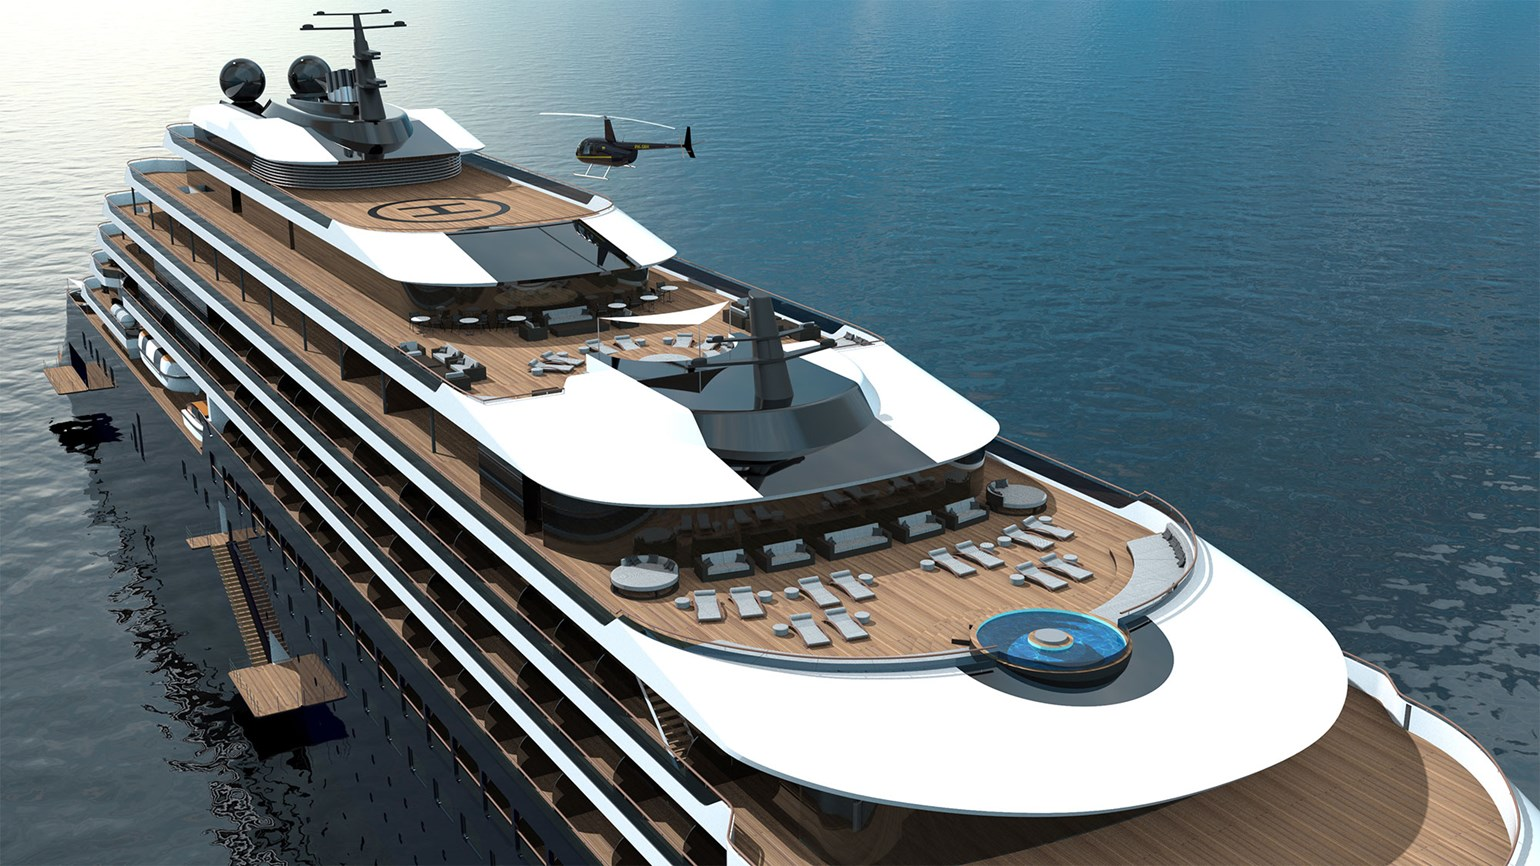 Ritz-Carlton gets into the cruise business